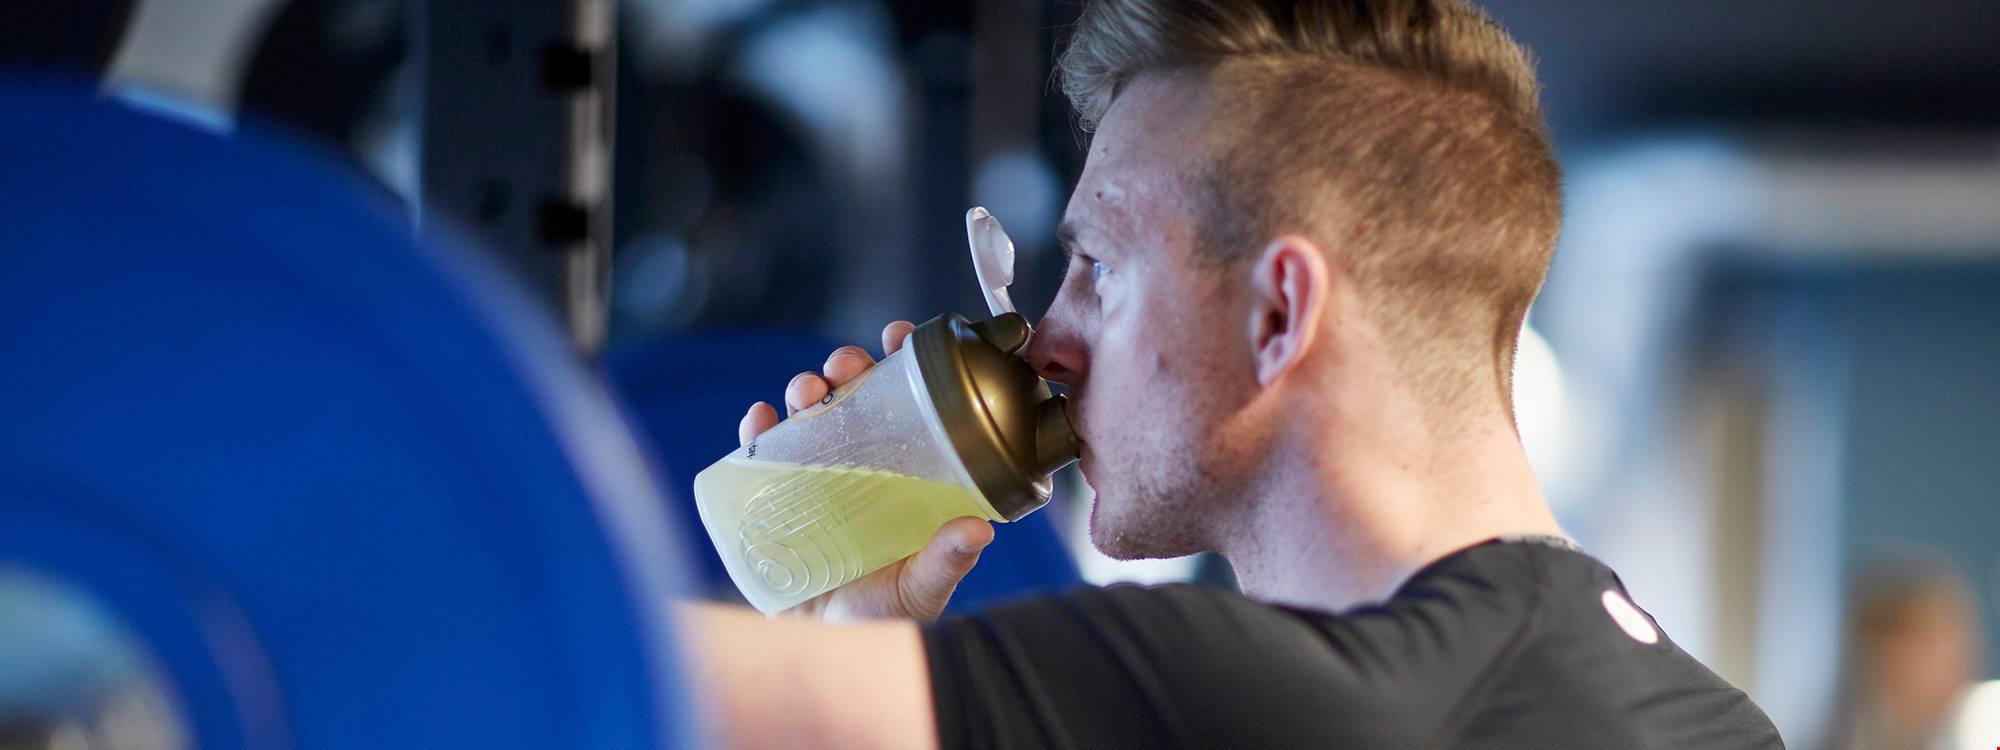 Whey protein for improved performance